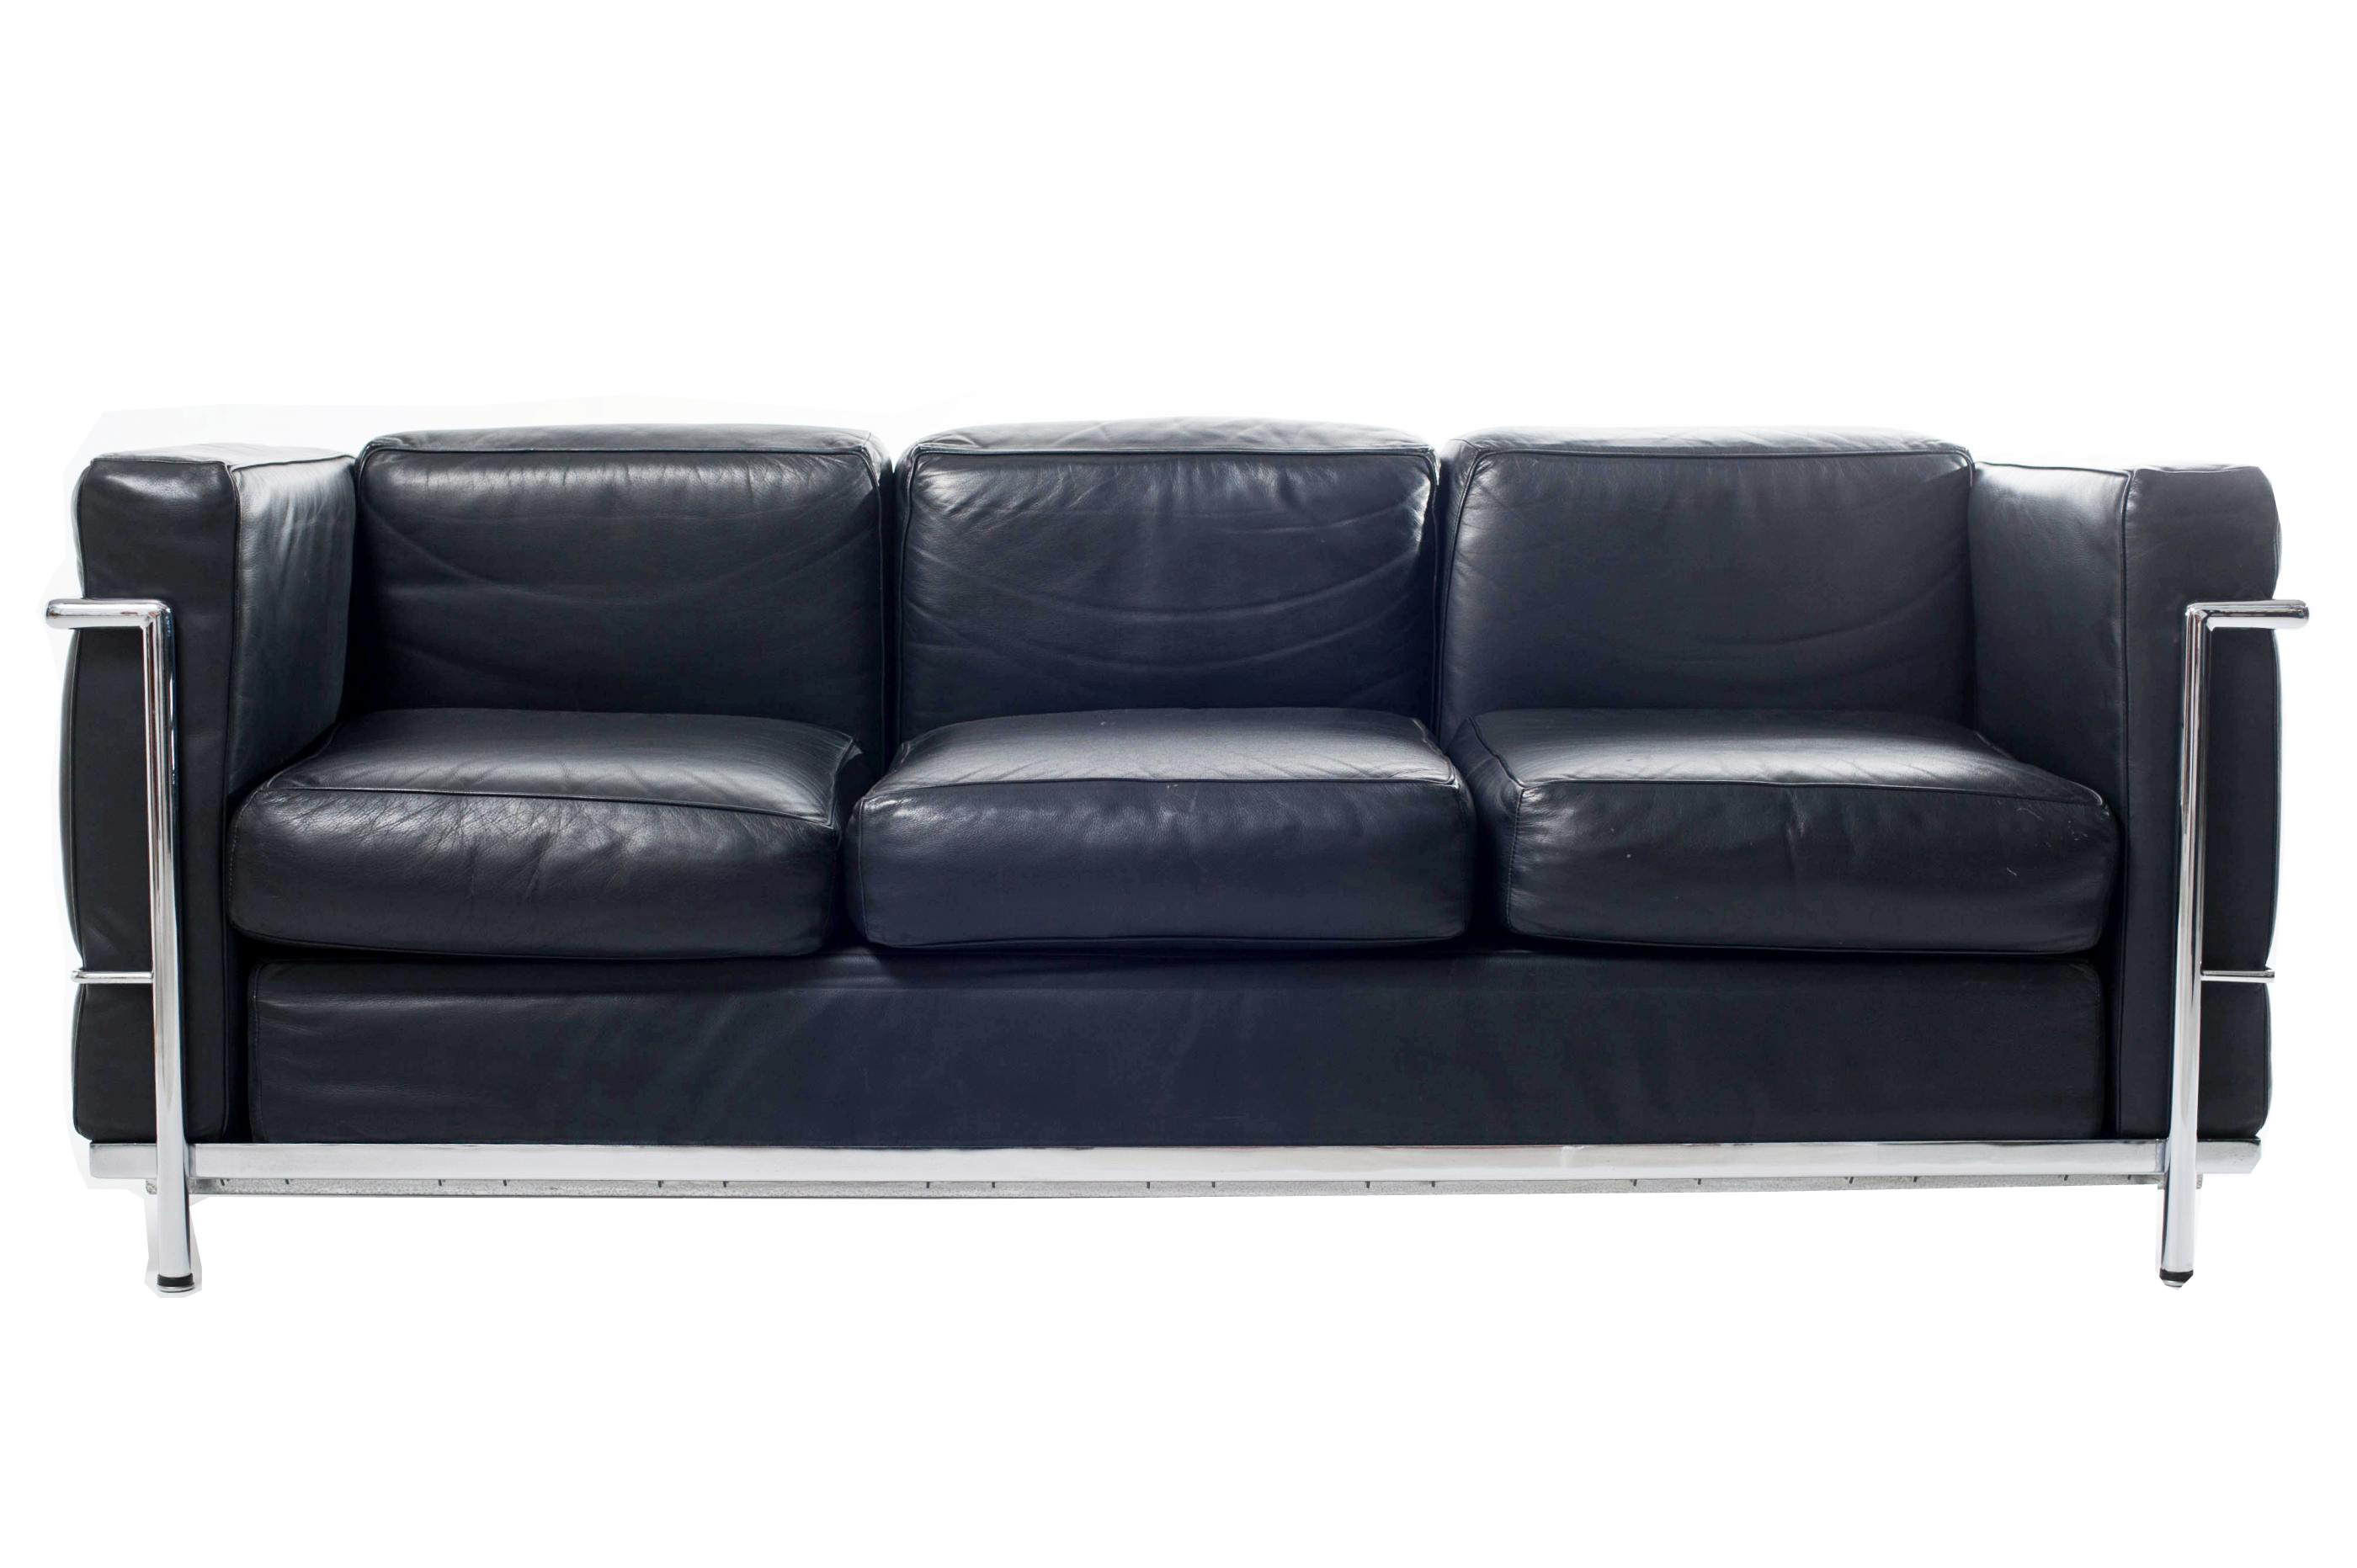 sofa lc3 le corbusier alivar 1928 italian design. Black Bedroom Furniture Sets. Home Design Ideas